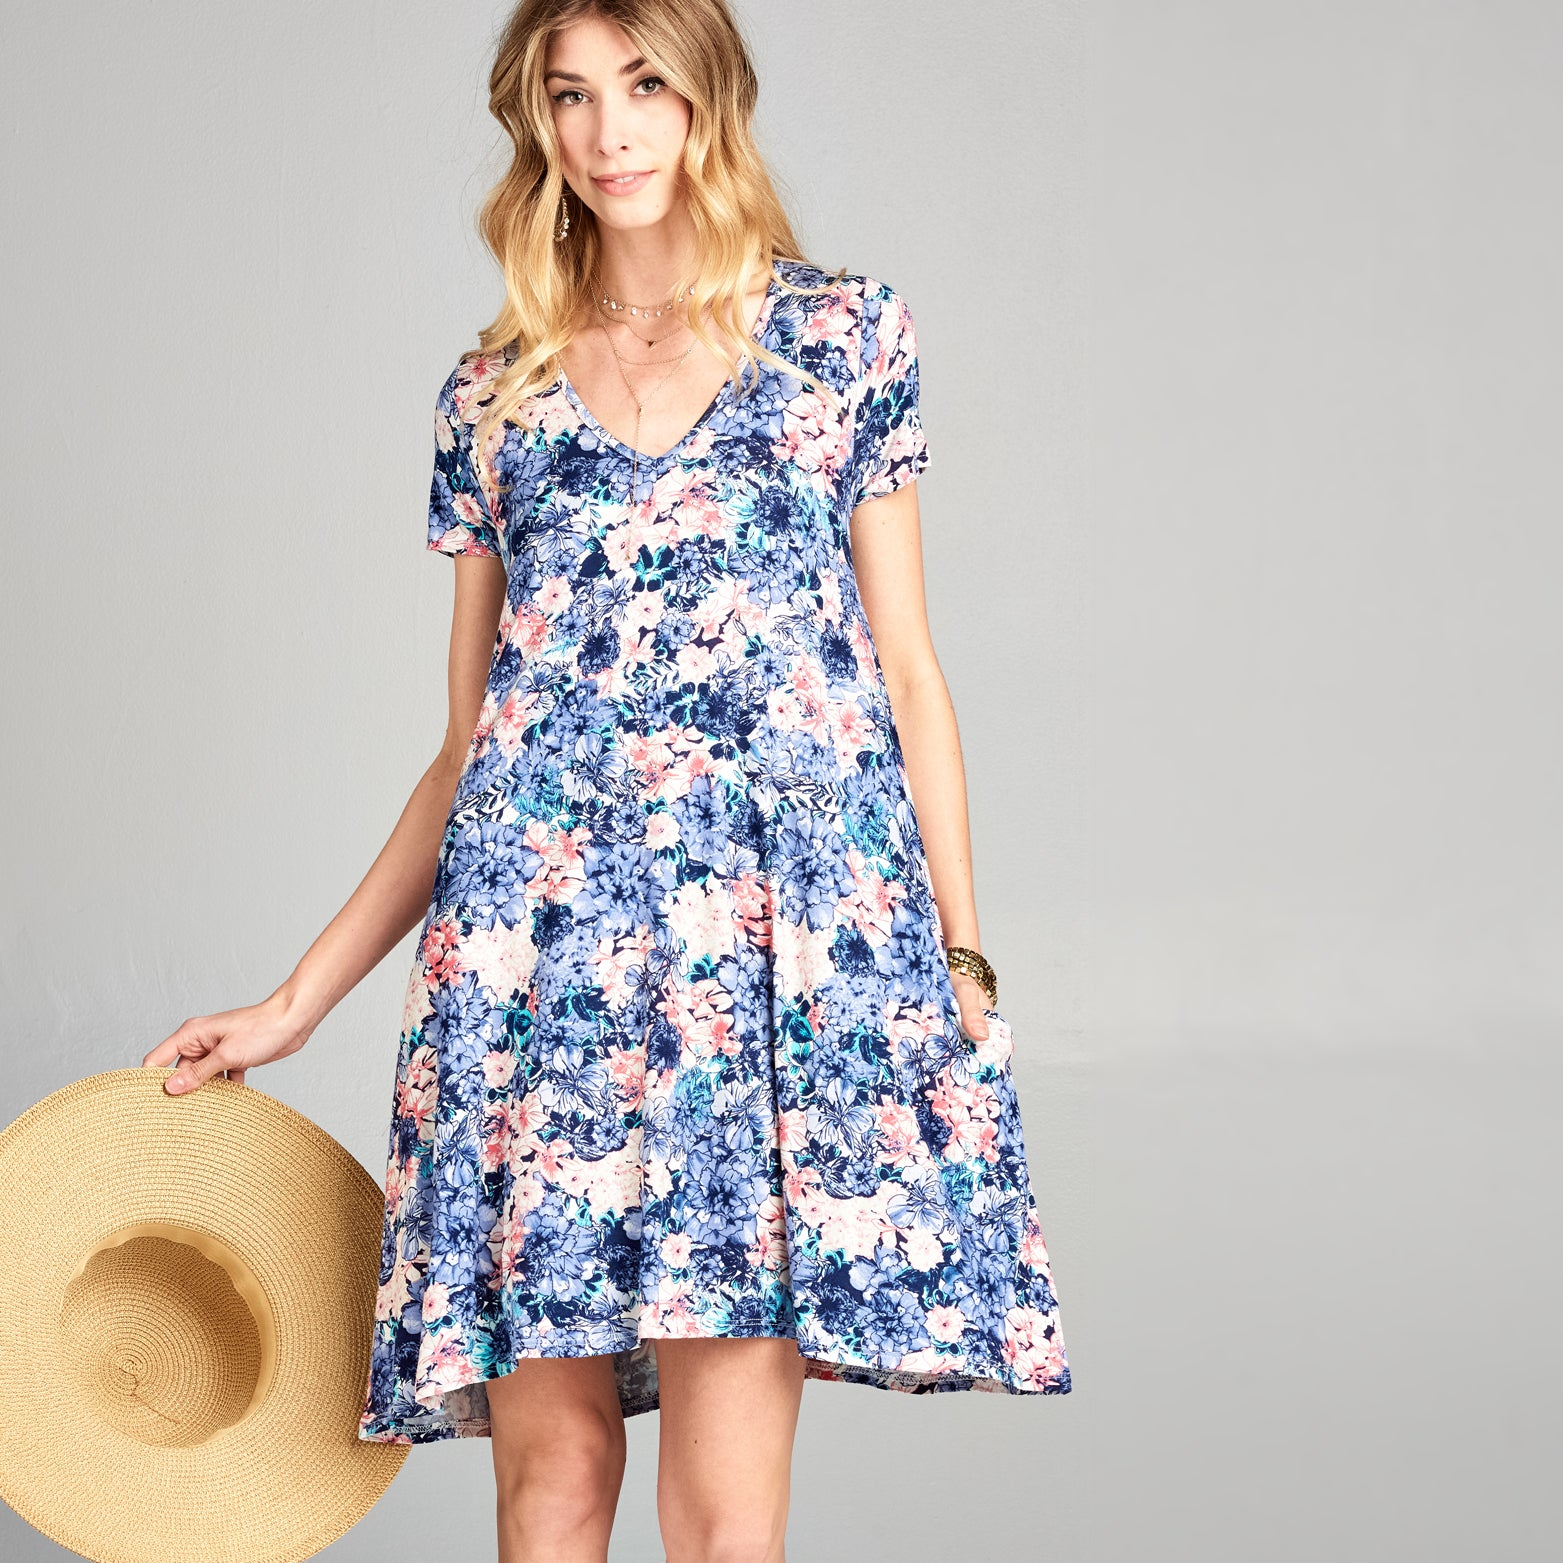 Lavender Floral Swing Dress